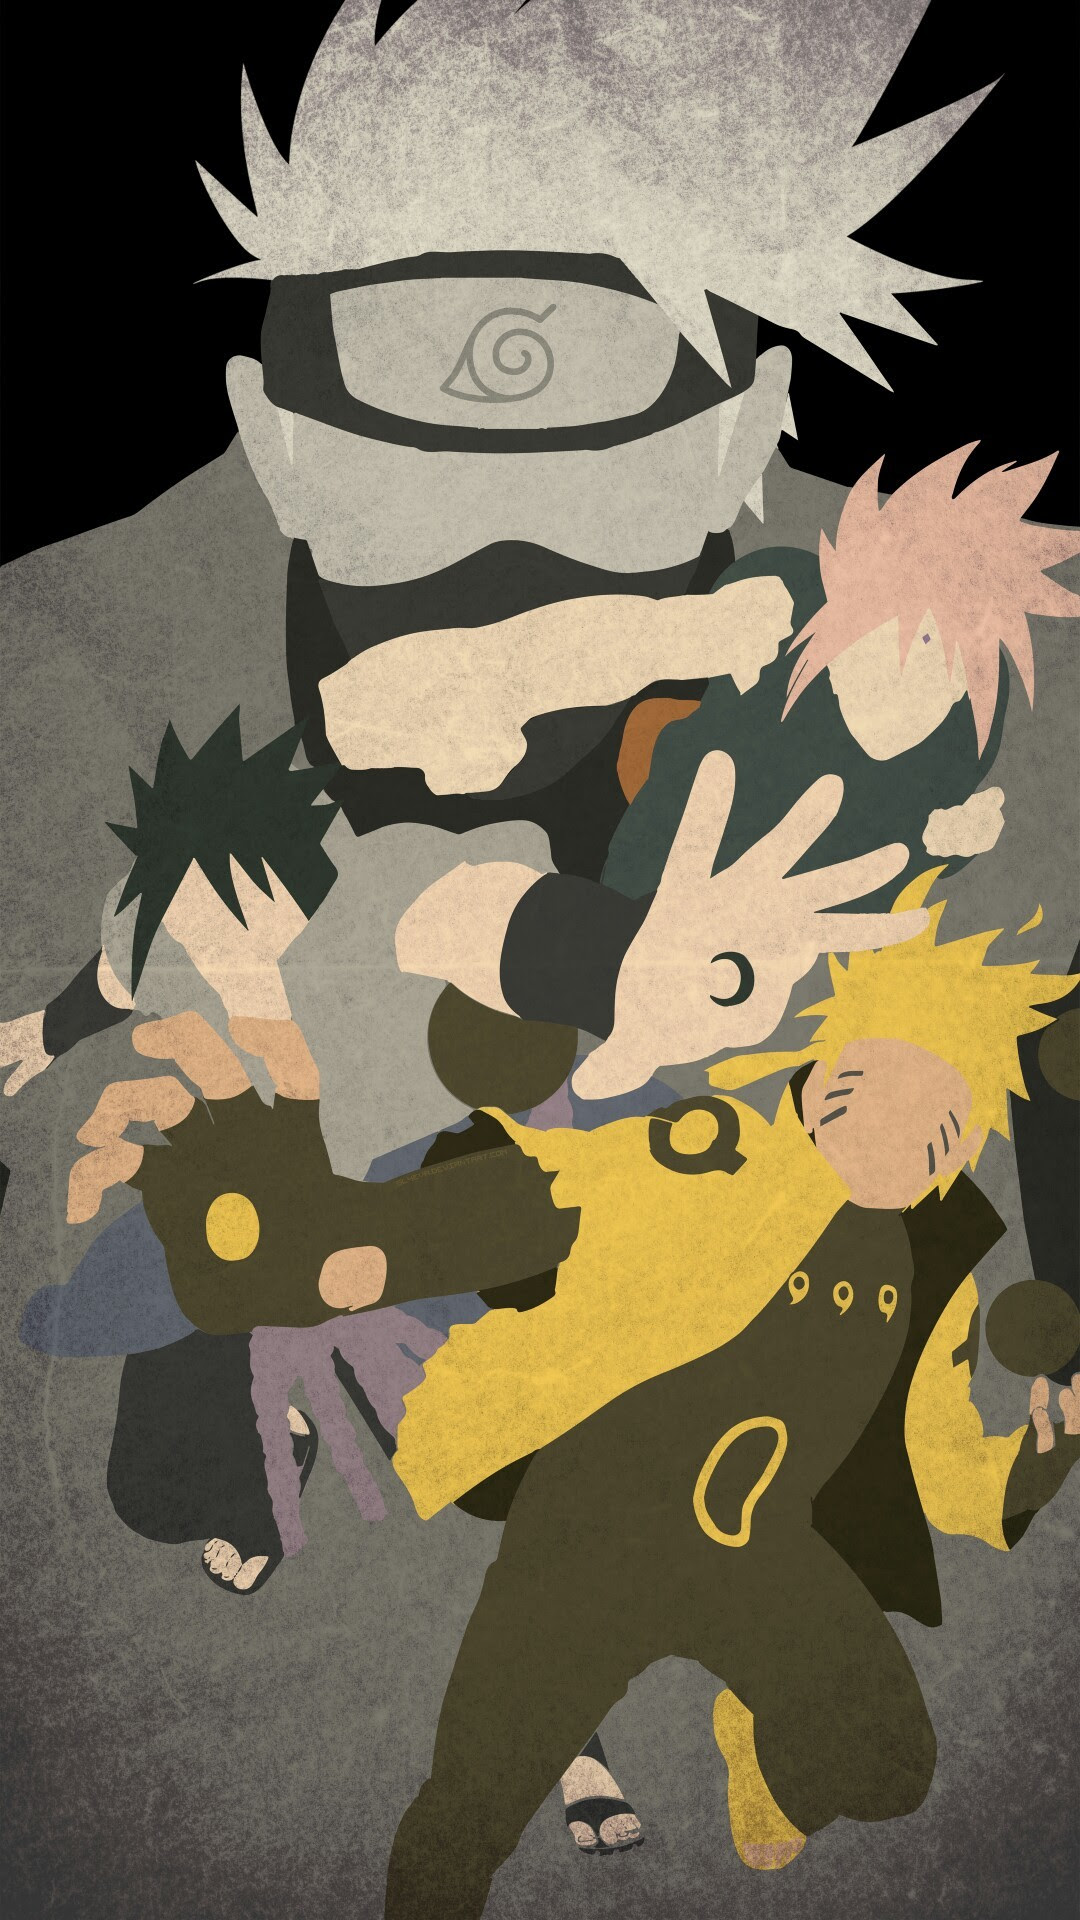 Naruto Wallpapers HD for iPhone (77+ images)